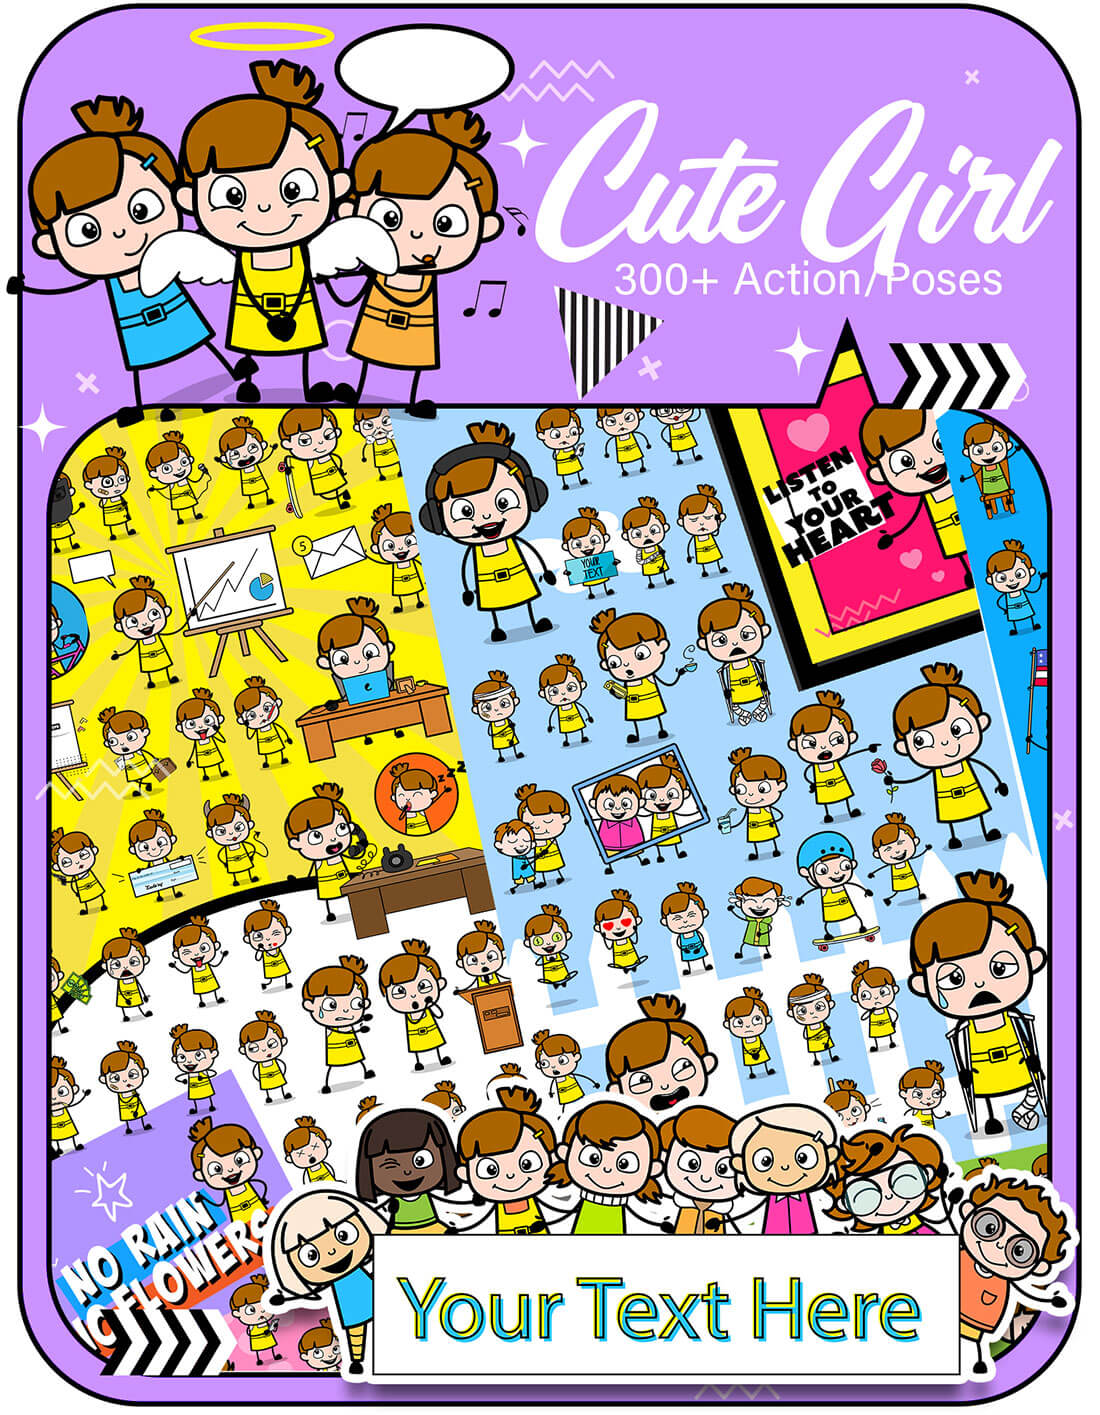 009-Cute-Girl-Vector-Cartoon-Characters.jpg